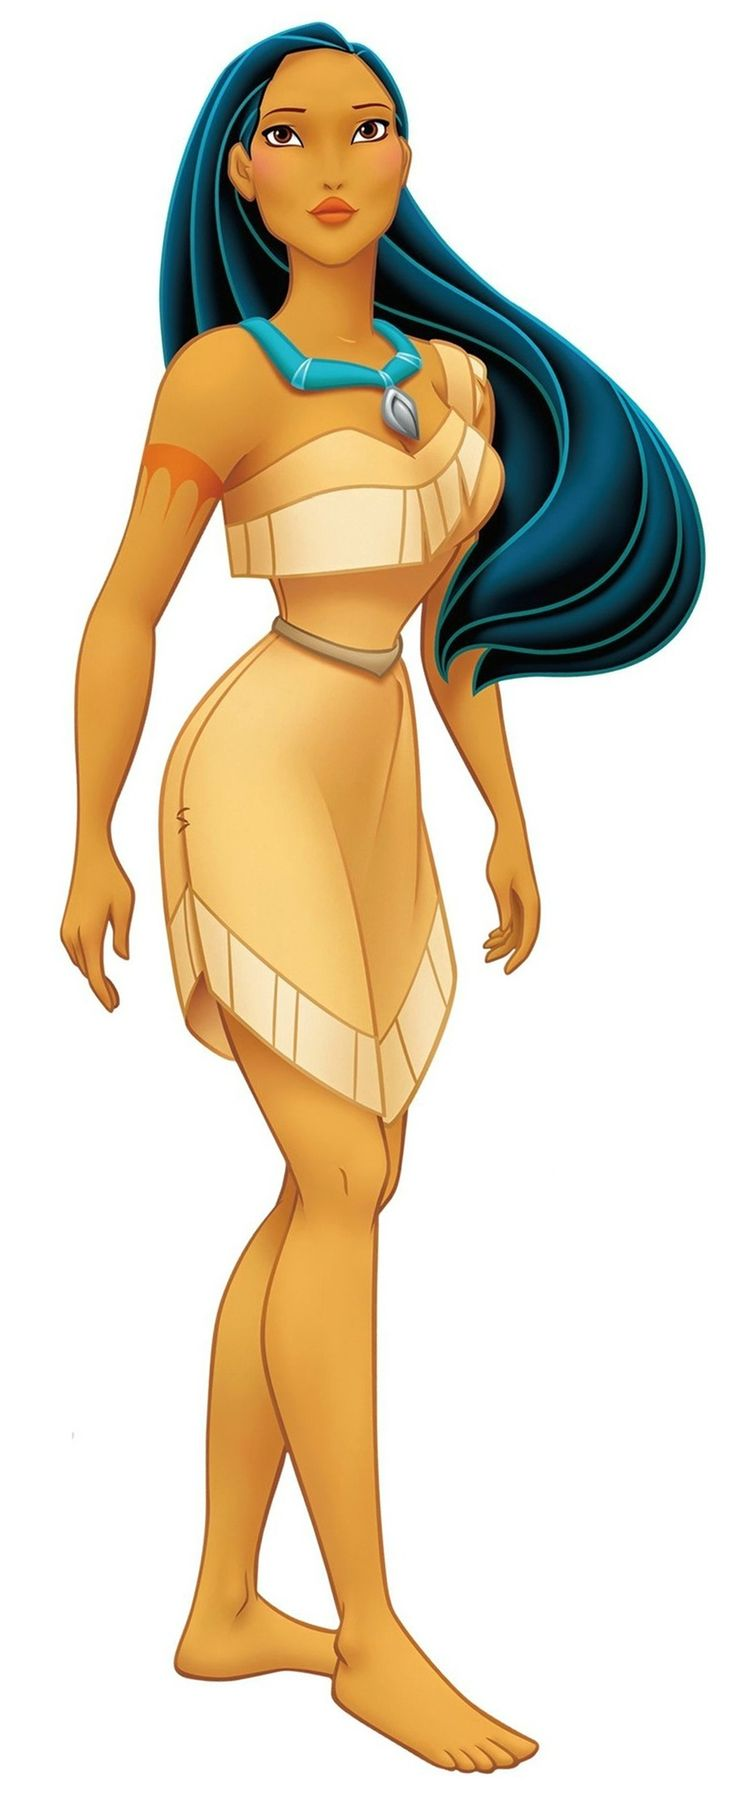 Past - Disney's Pocahontas is loosely based on the real-life Native American princess whose name was Matoaka (Pocahontas was her nickname and meant 'Little Mischief'). She falls in love with a man named John Smith, who helps her prevent a war from commencing between their people. (JaDangerz, 2010)